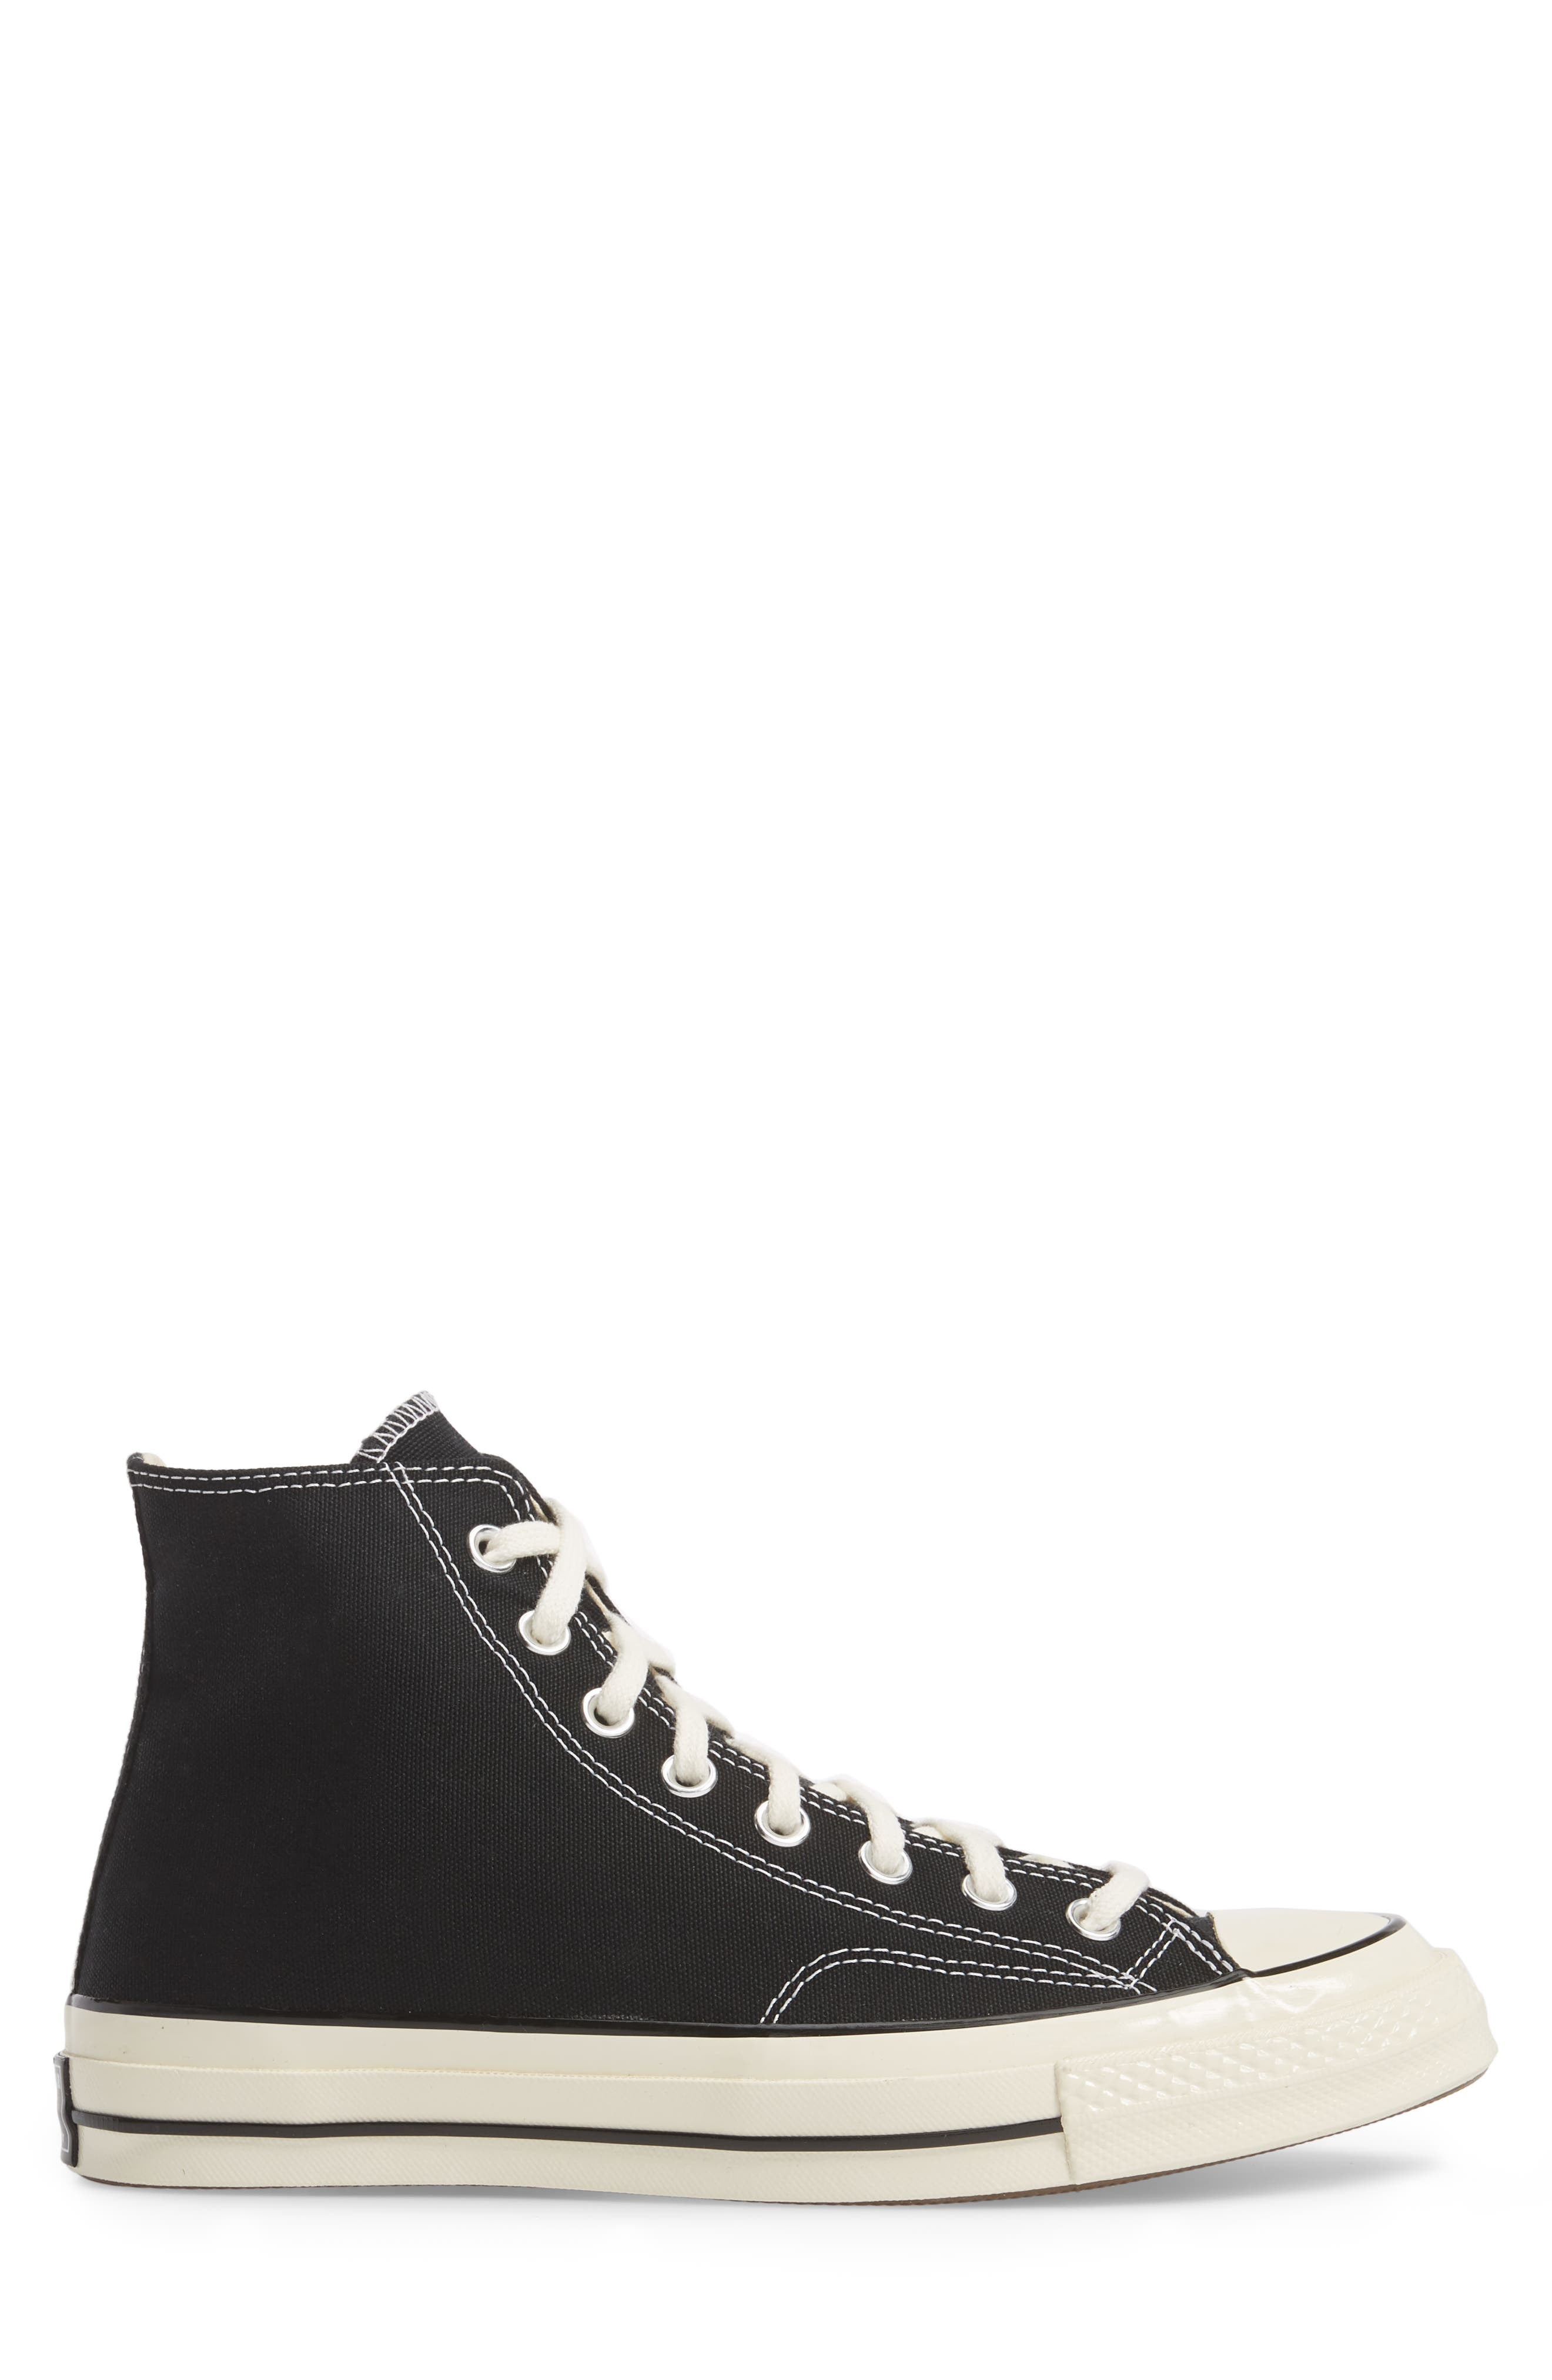 CONVERSE, Chuck Taylor<sup>®</sup> All Star<sup>®</sup> 70 High Top Sneaker, Alternate thumbnail 3, color, BLACK